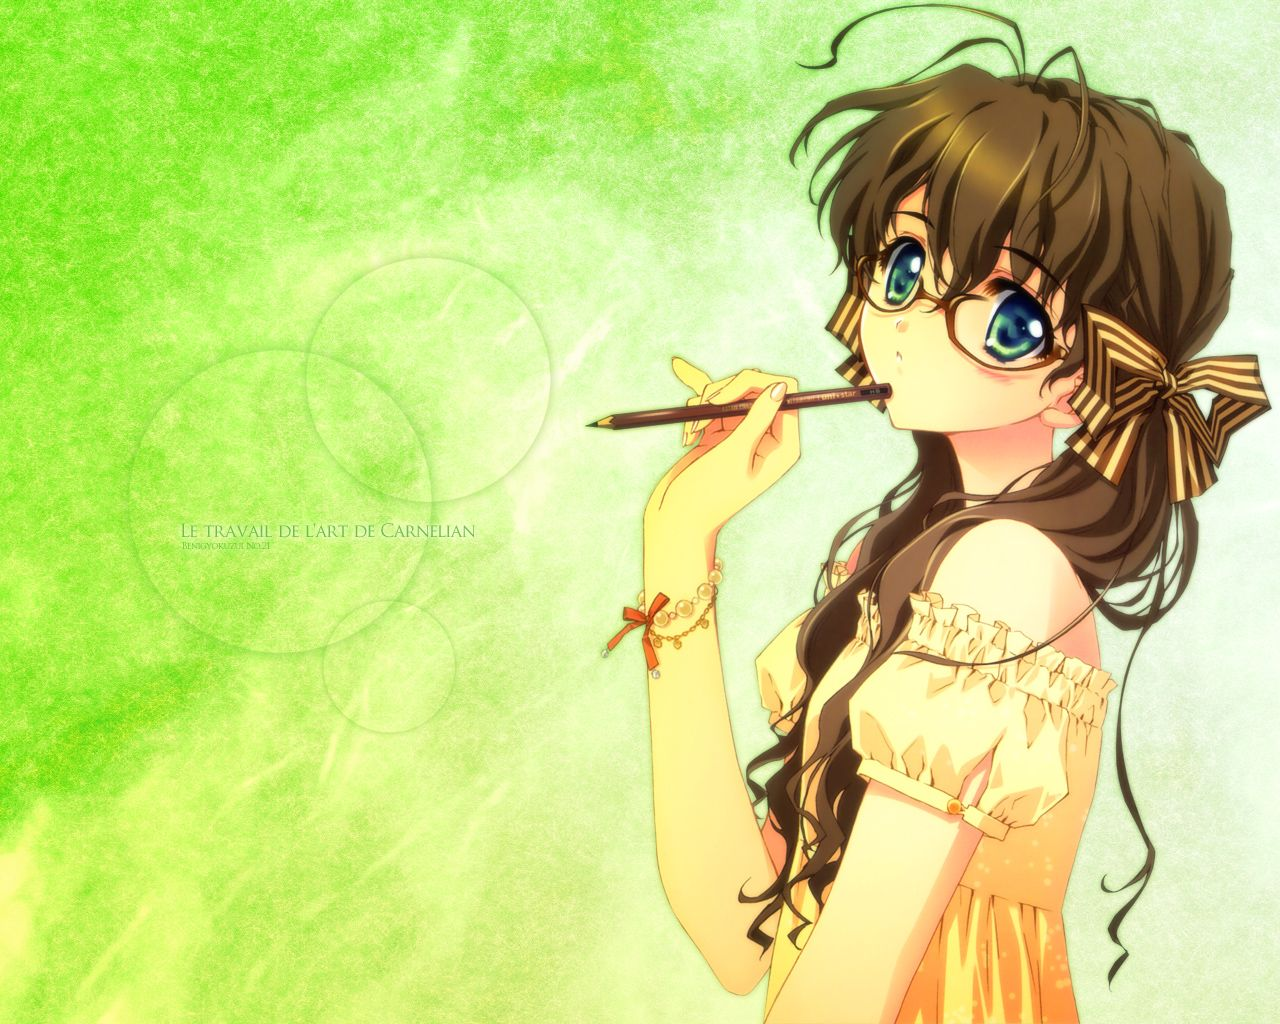 Cute girl anime blue brown hair cute eyes girl glasses green